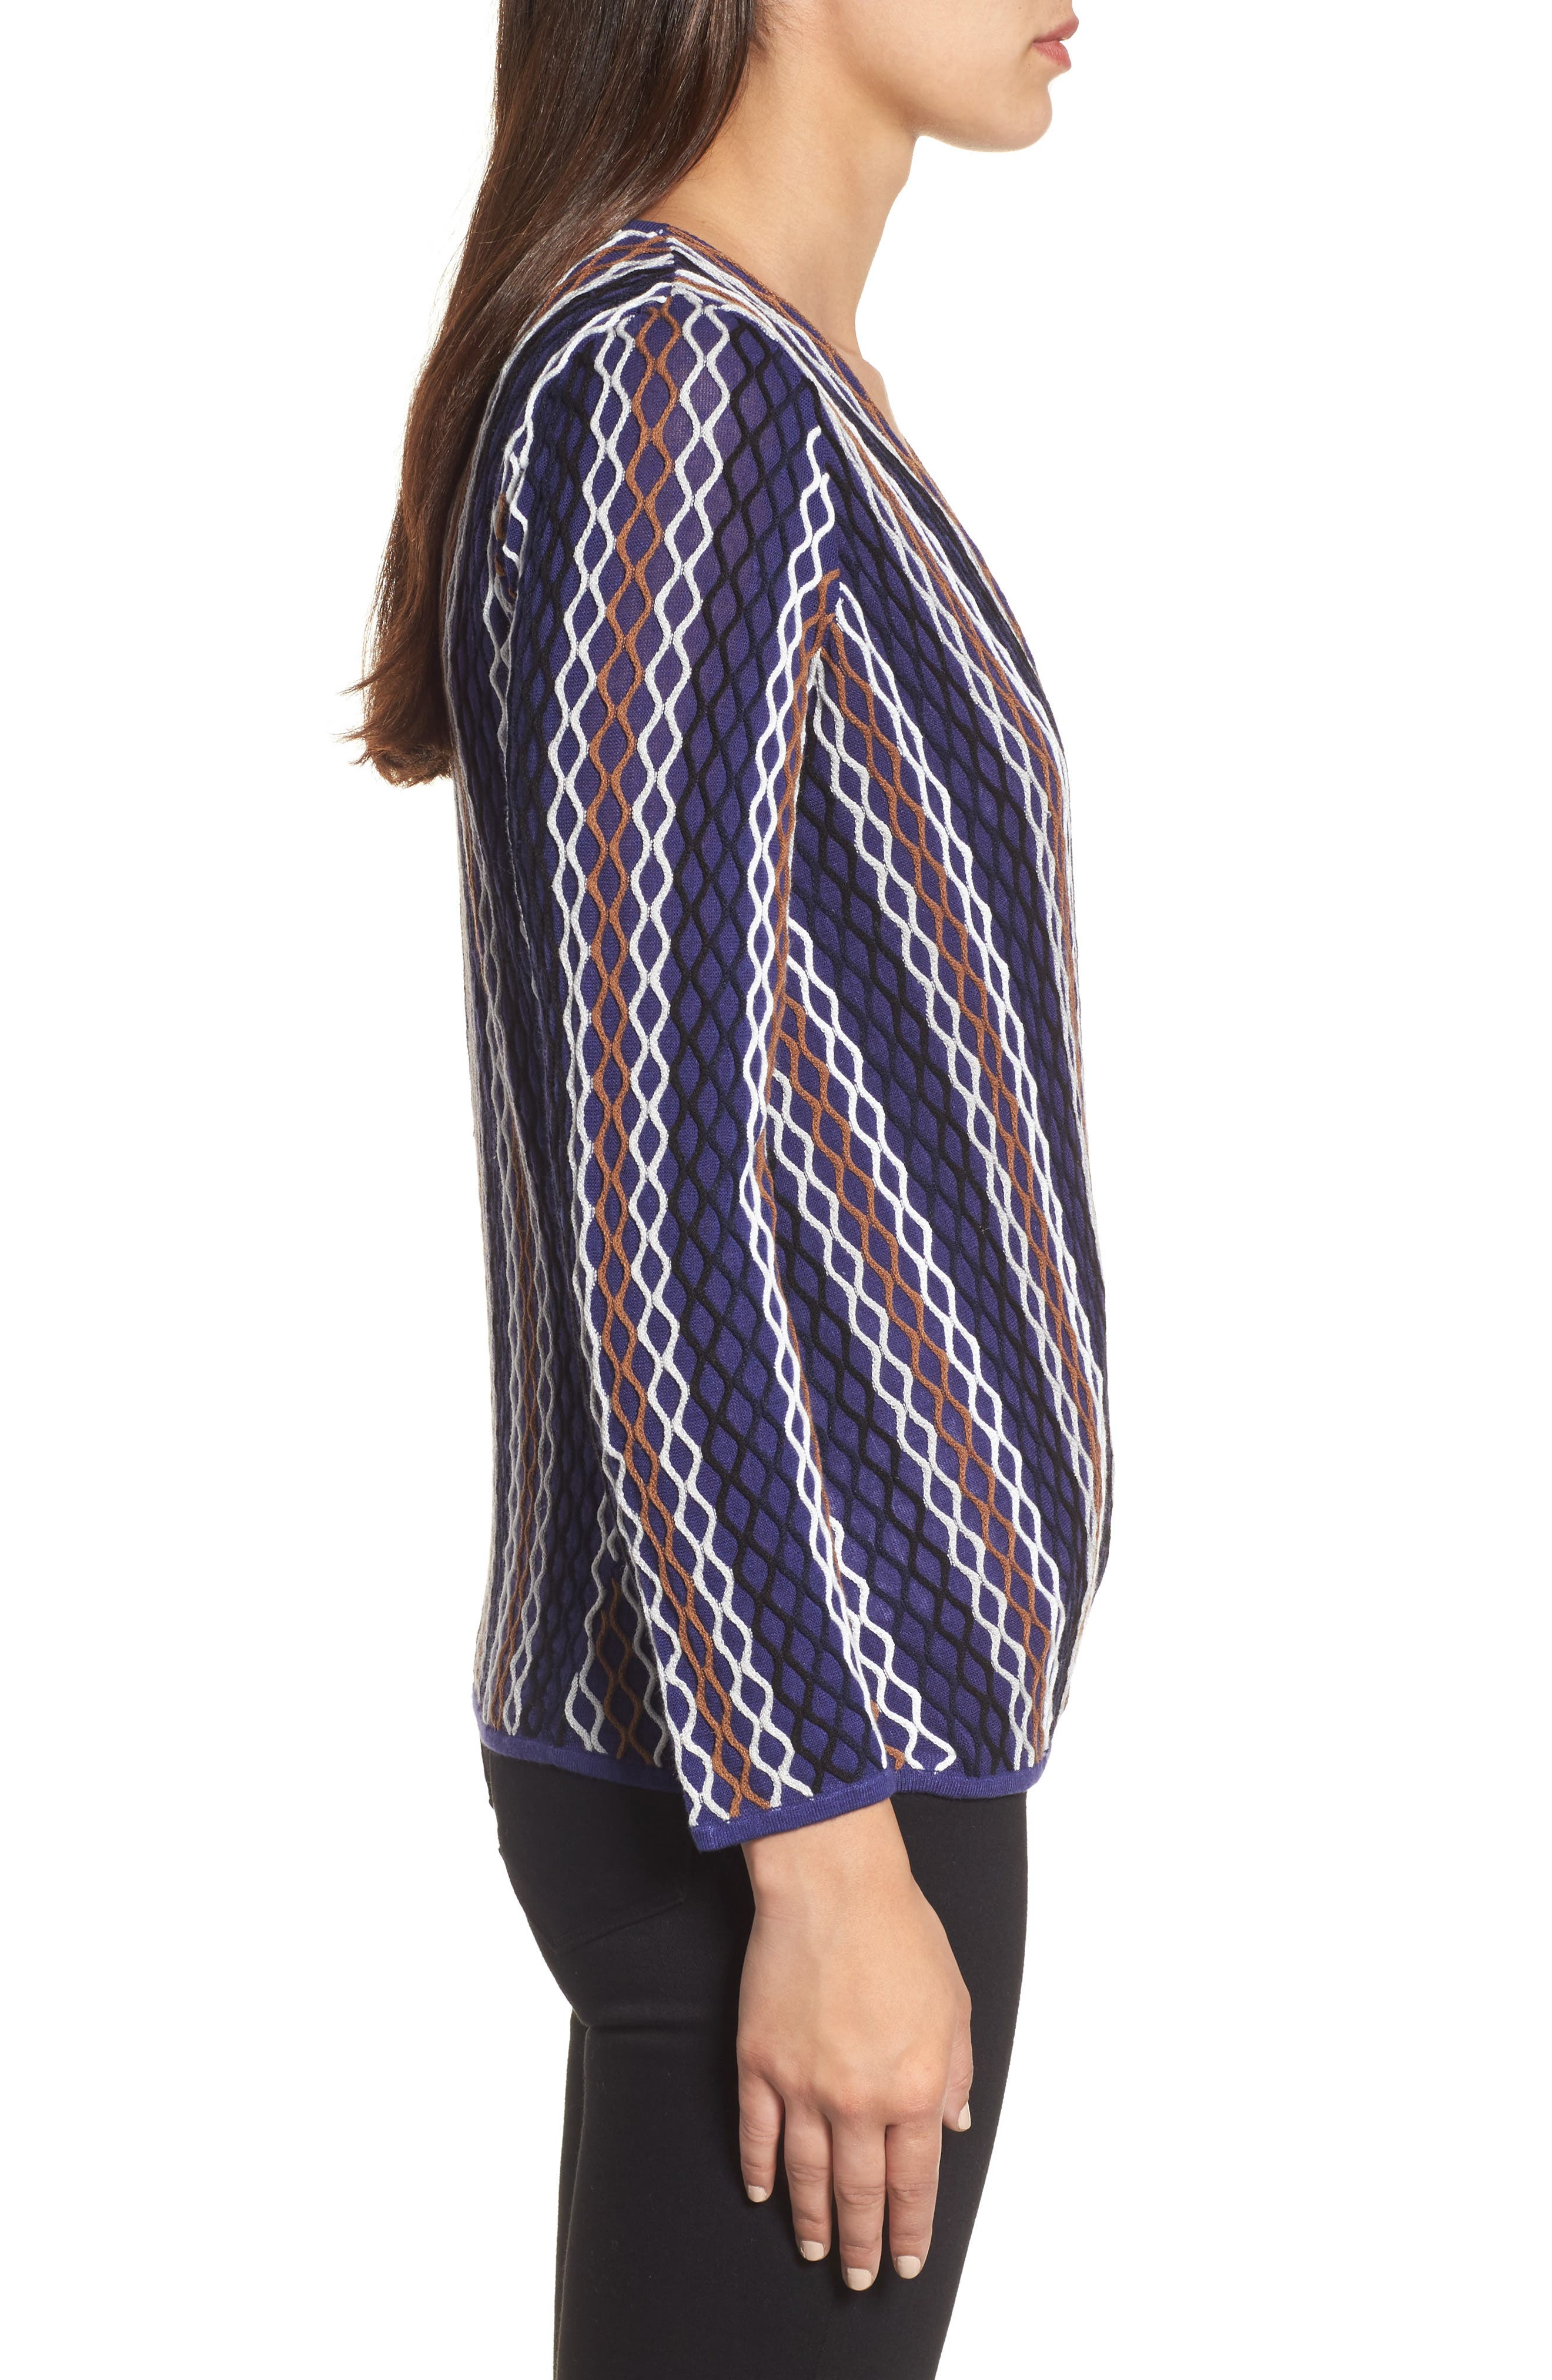 NIC+ ZOE Squiggled Up 4-Way Convertible Cardigan,                             Alternate thumbnail 3, color,                             Blue Multi